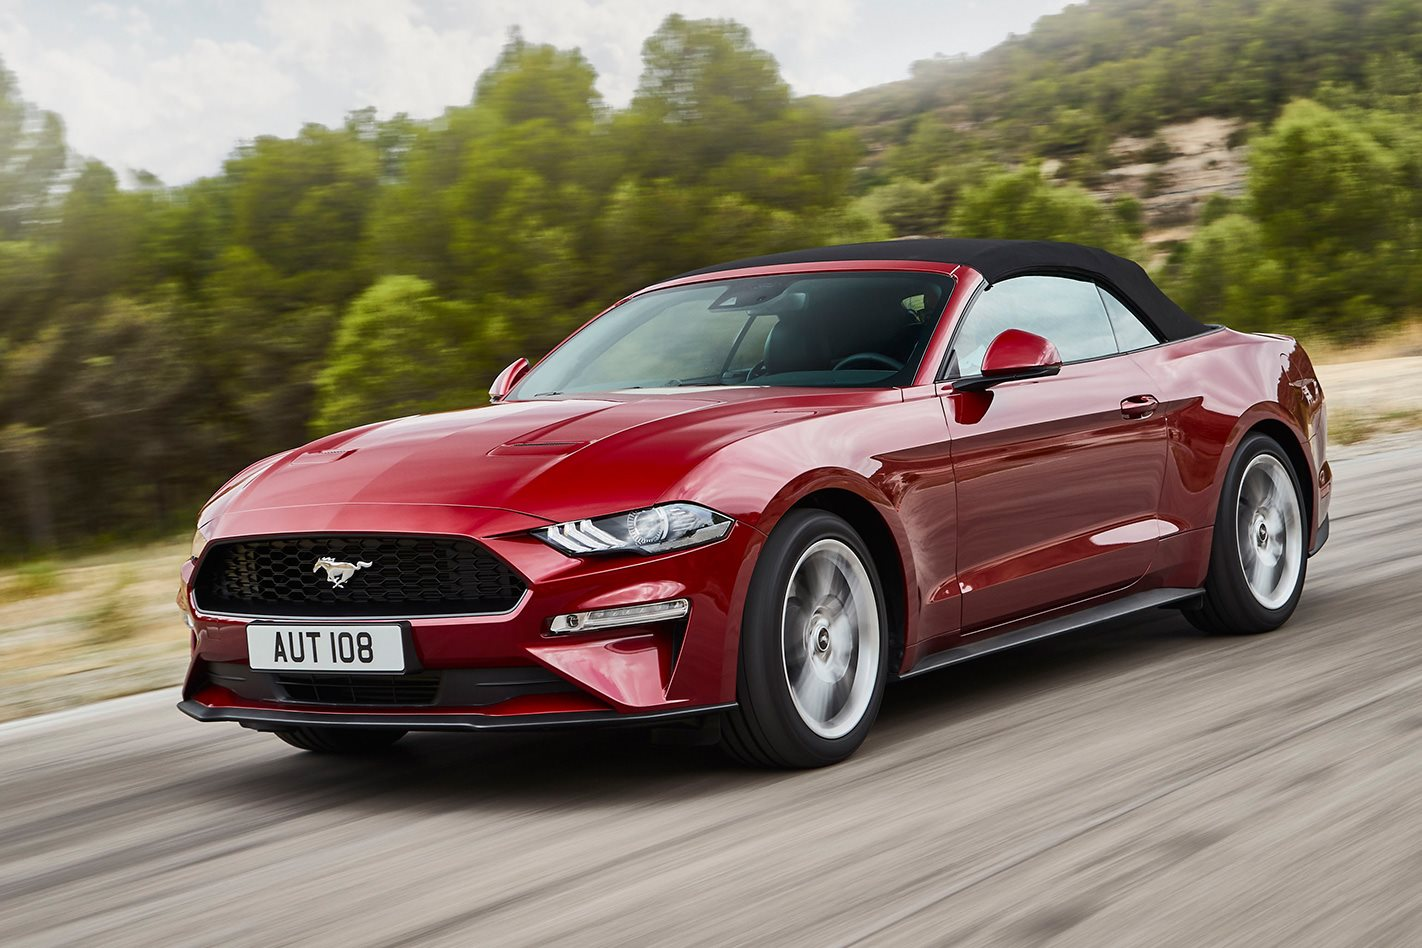 New Ford Mustang 2019 Convertible Coupe Ford Uk >> 2019 Ford Mustang 2 3 Litre Ecoboost Convertible Review